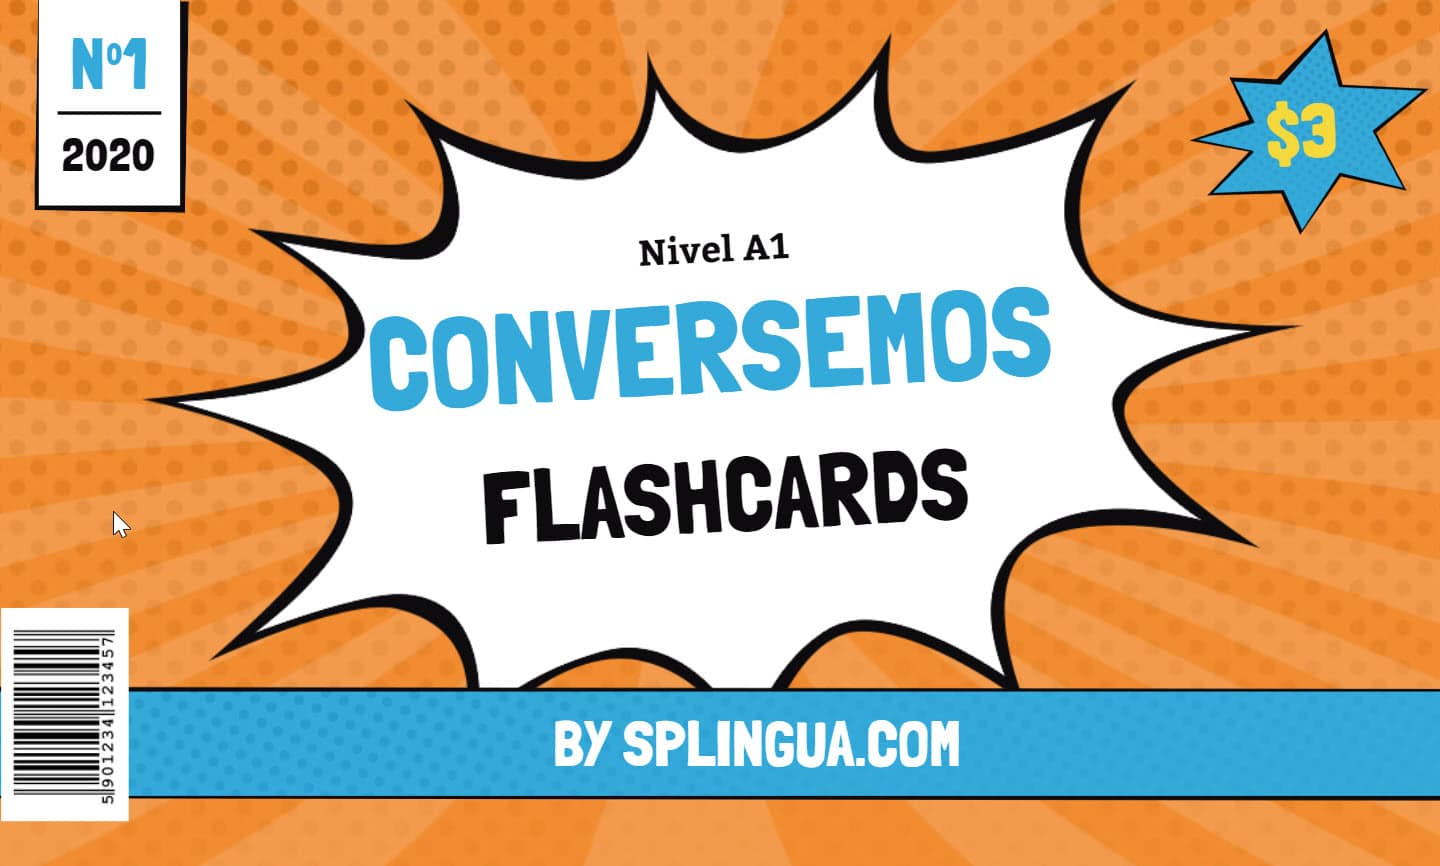 conversemos flashcards